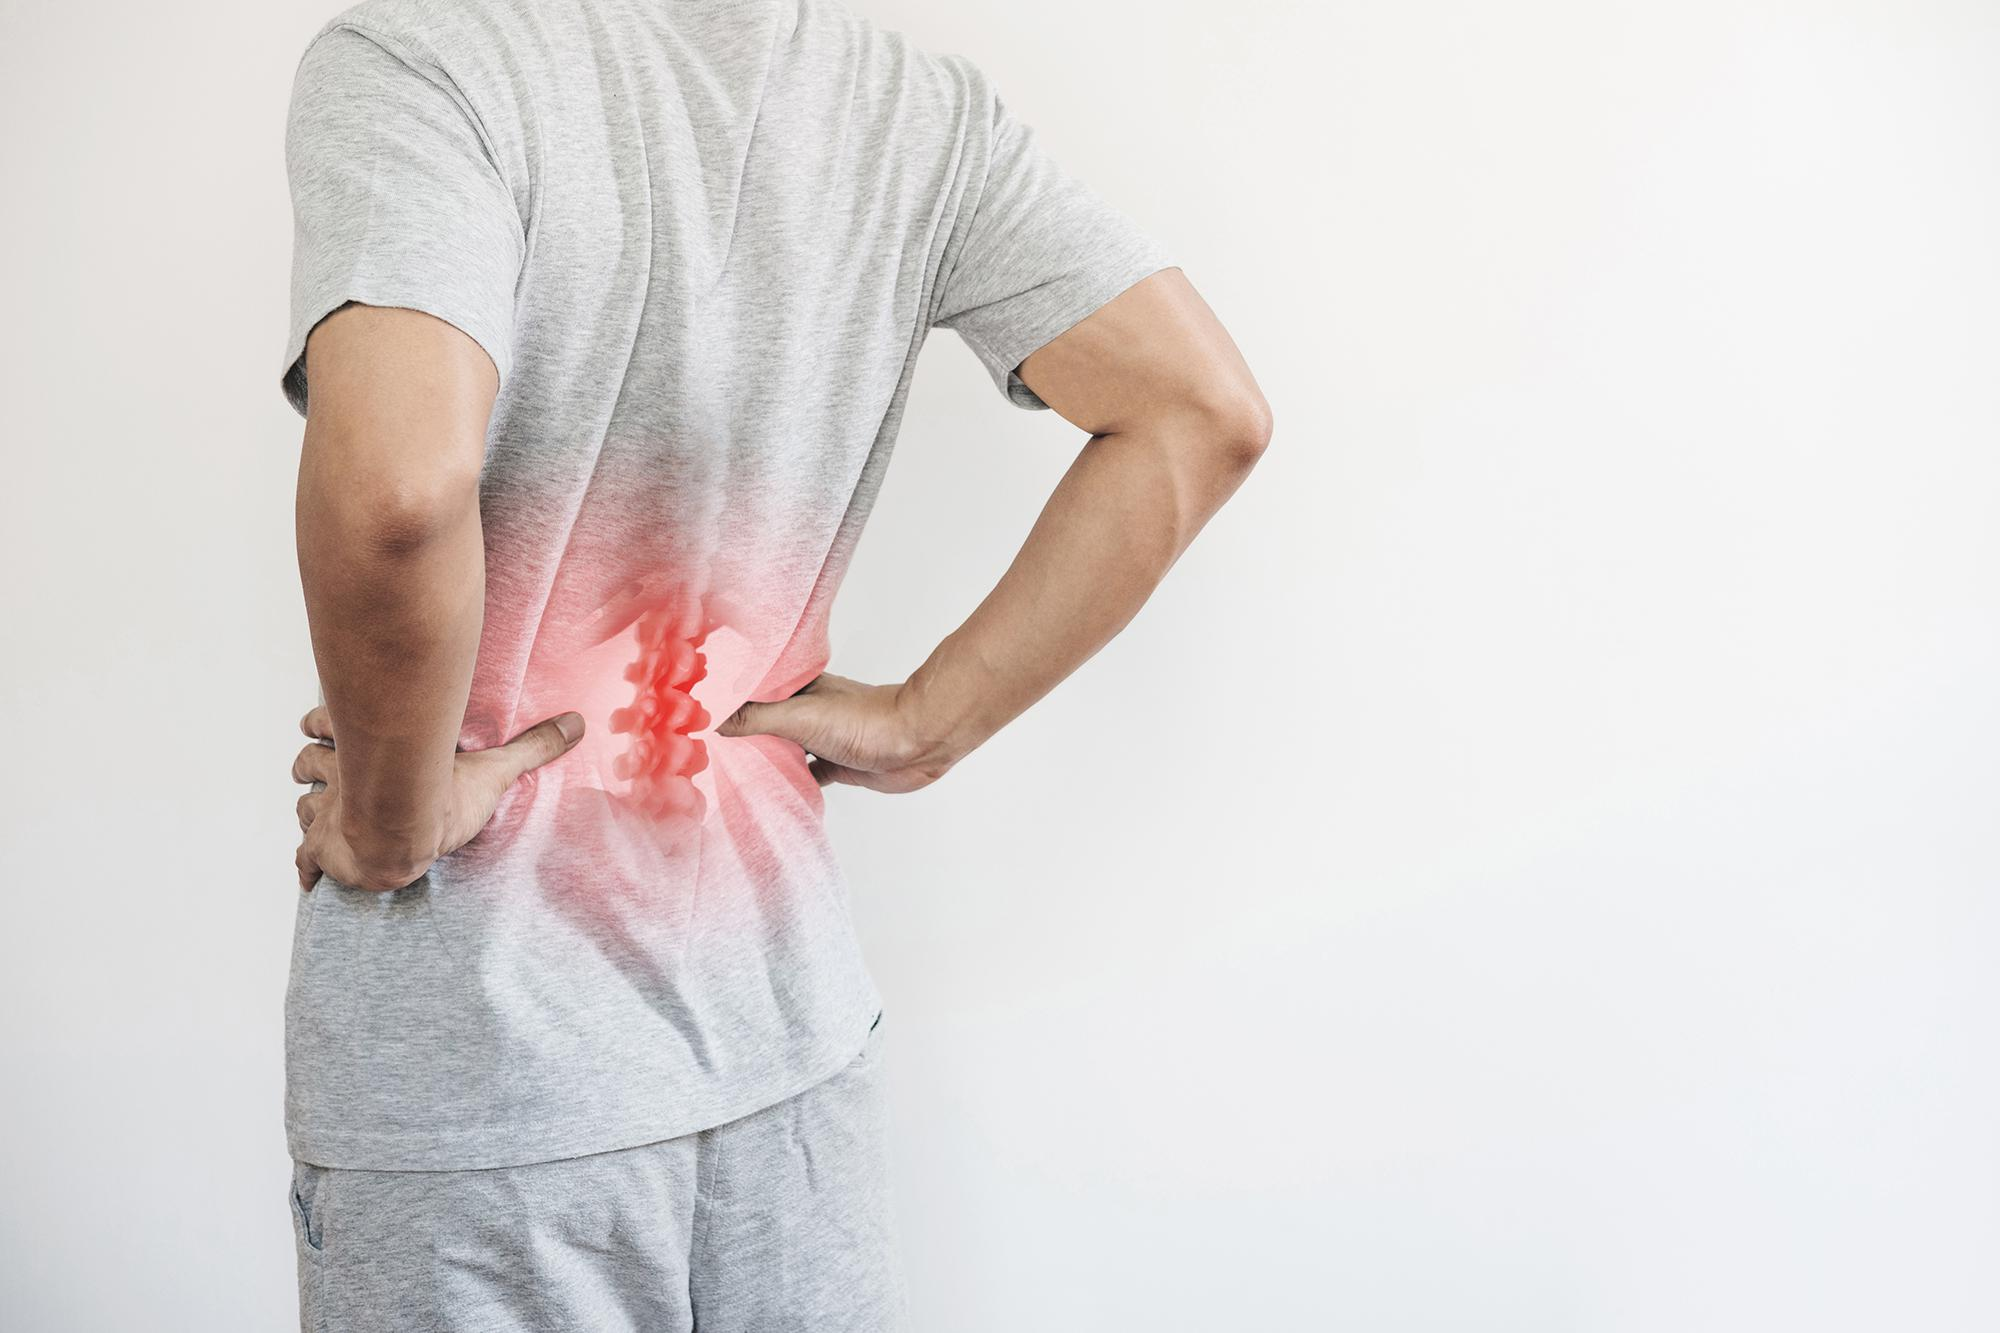 Find PEMF therapy in Arizona to help with chronic pain.